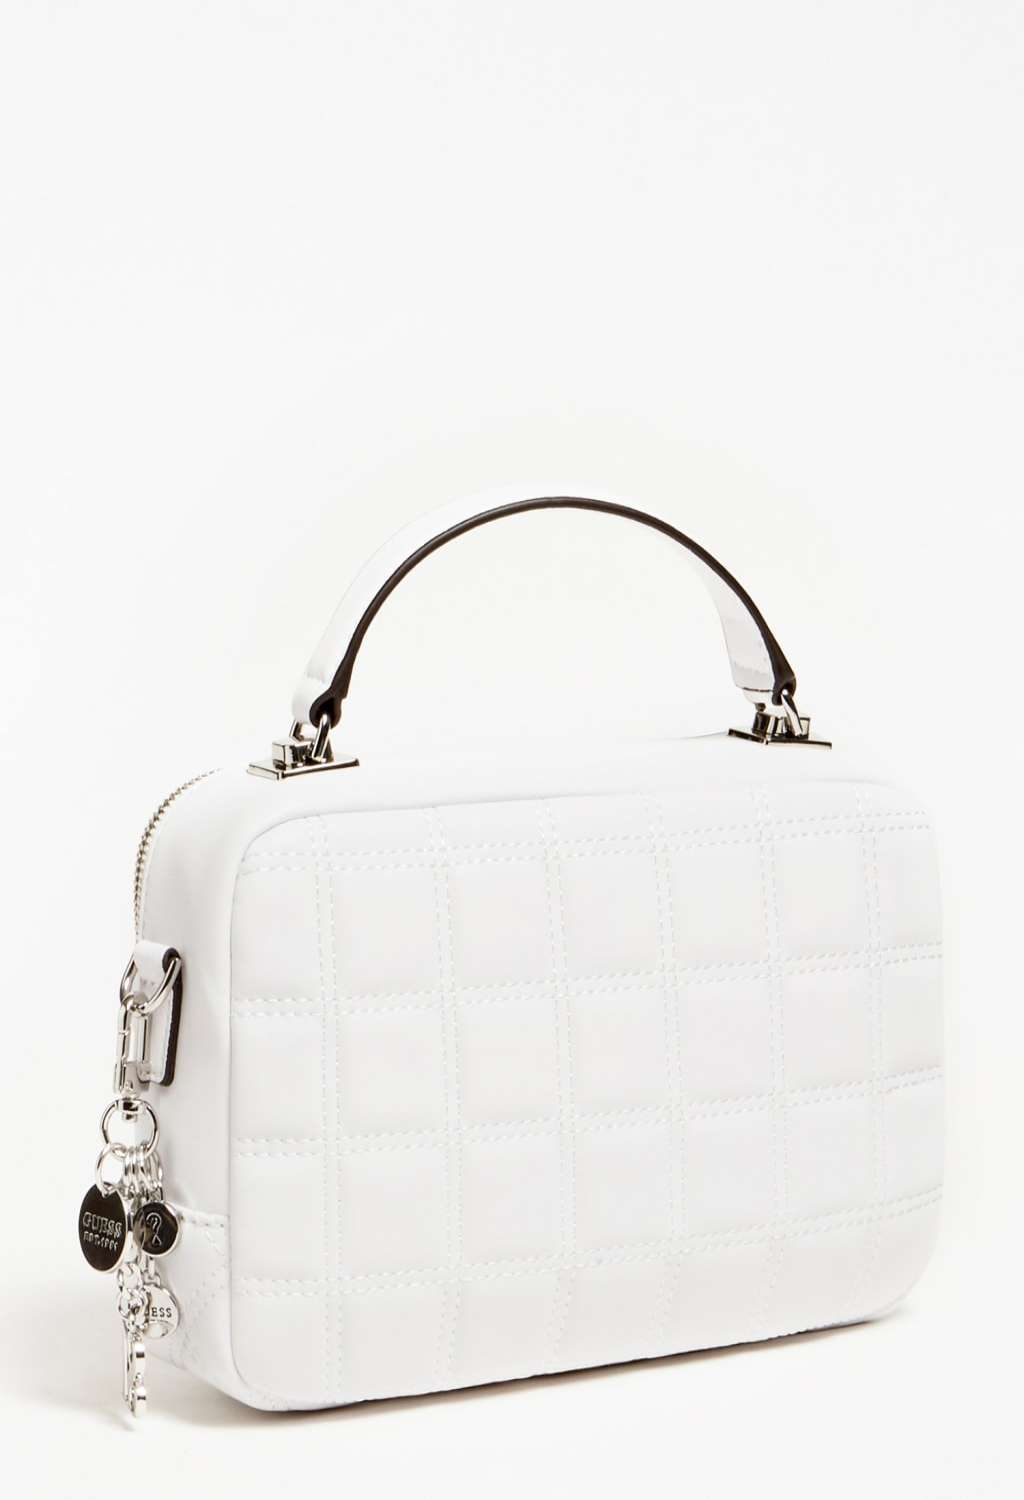 Tracolla bianca guess GUESS borse   Borse   VY8111160WHITE